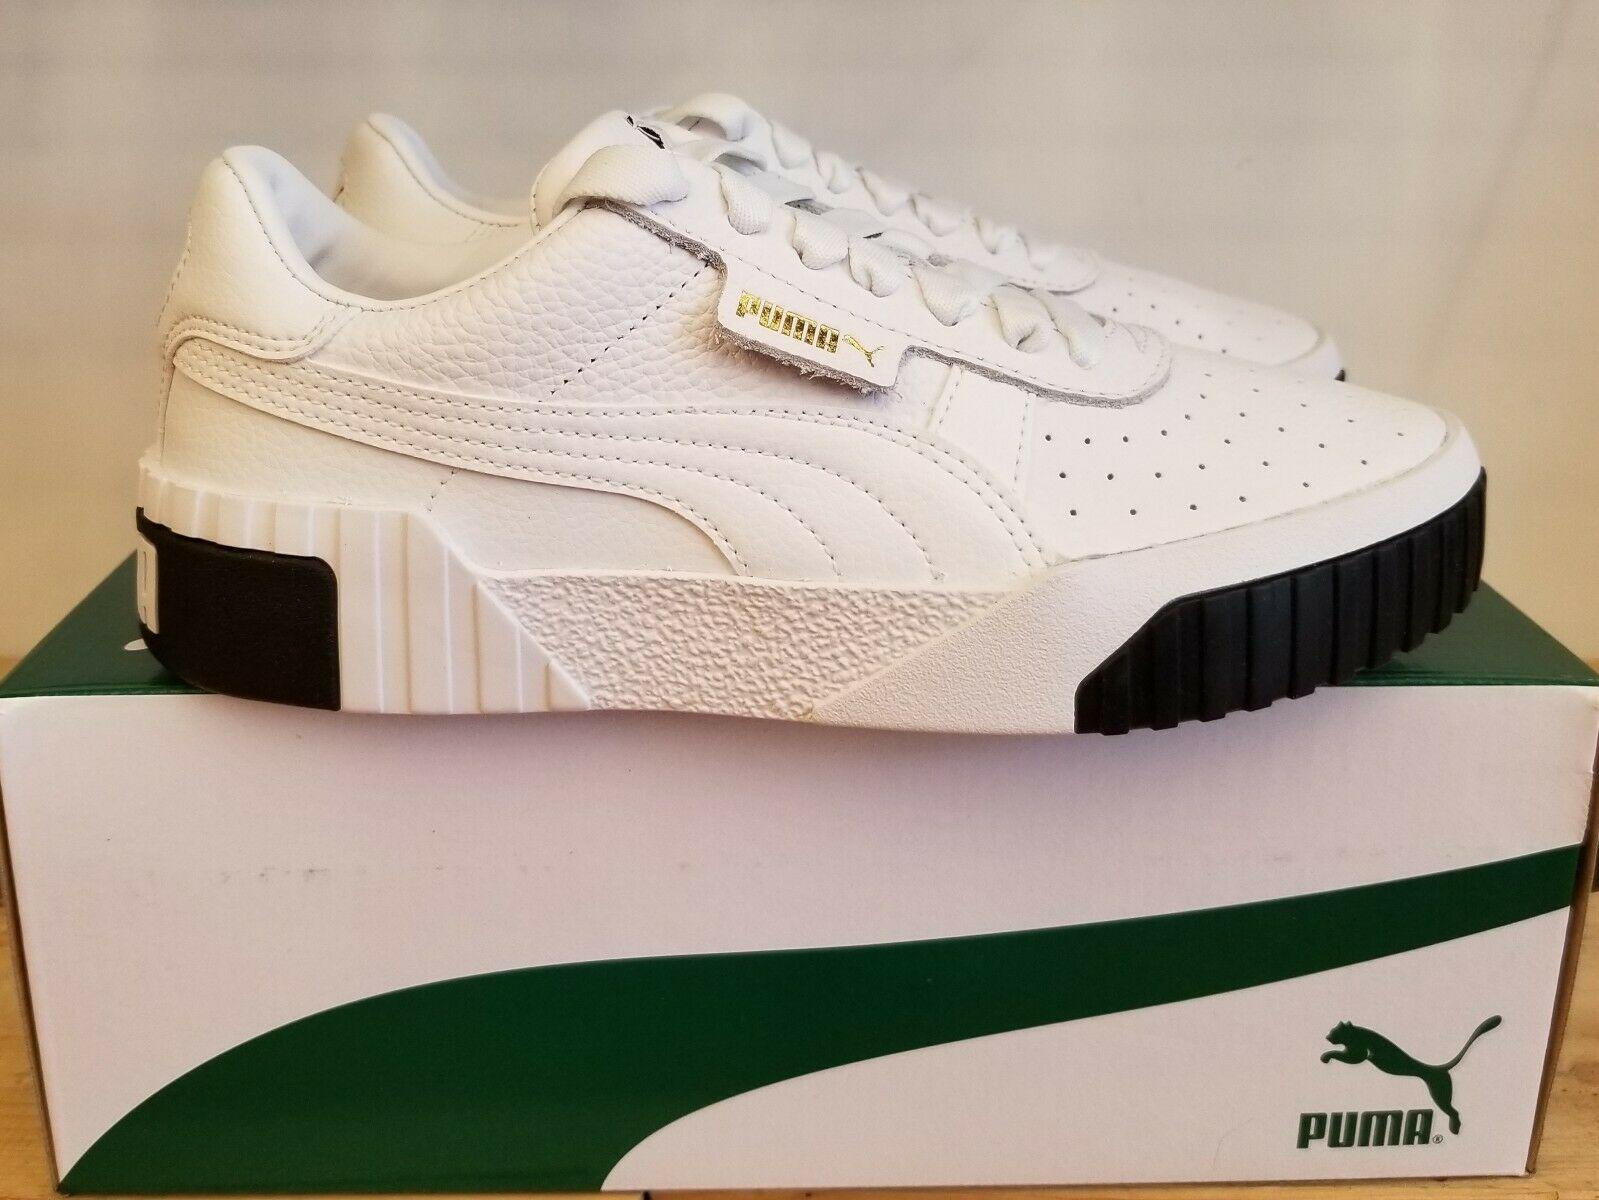 NEW IN THE BOX PUMA CALI WHITE BLACK 36915504 SHOES FOR WOMEN